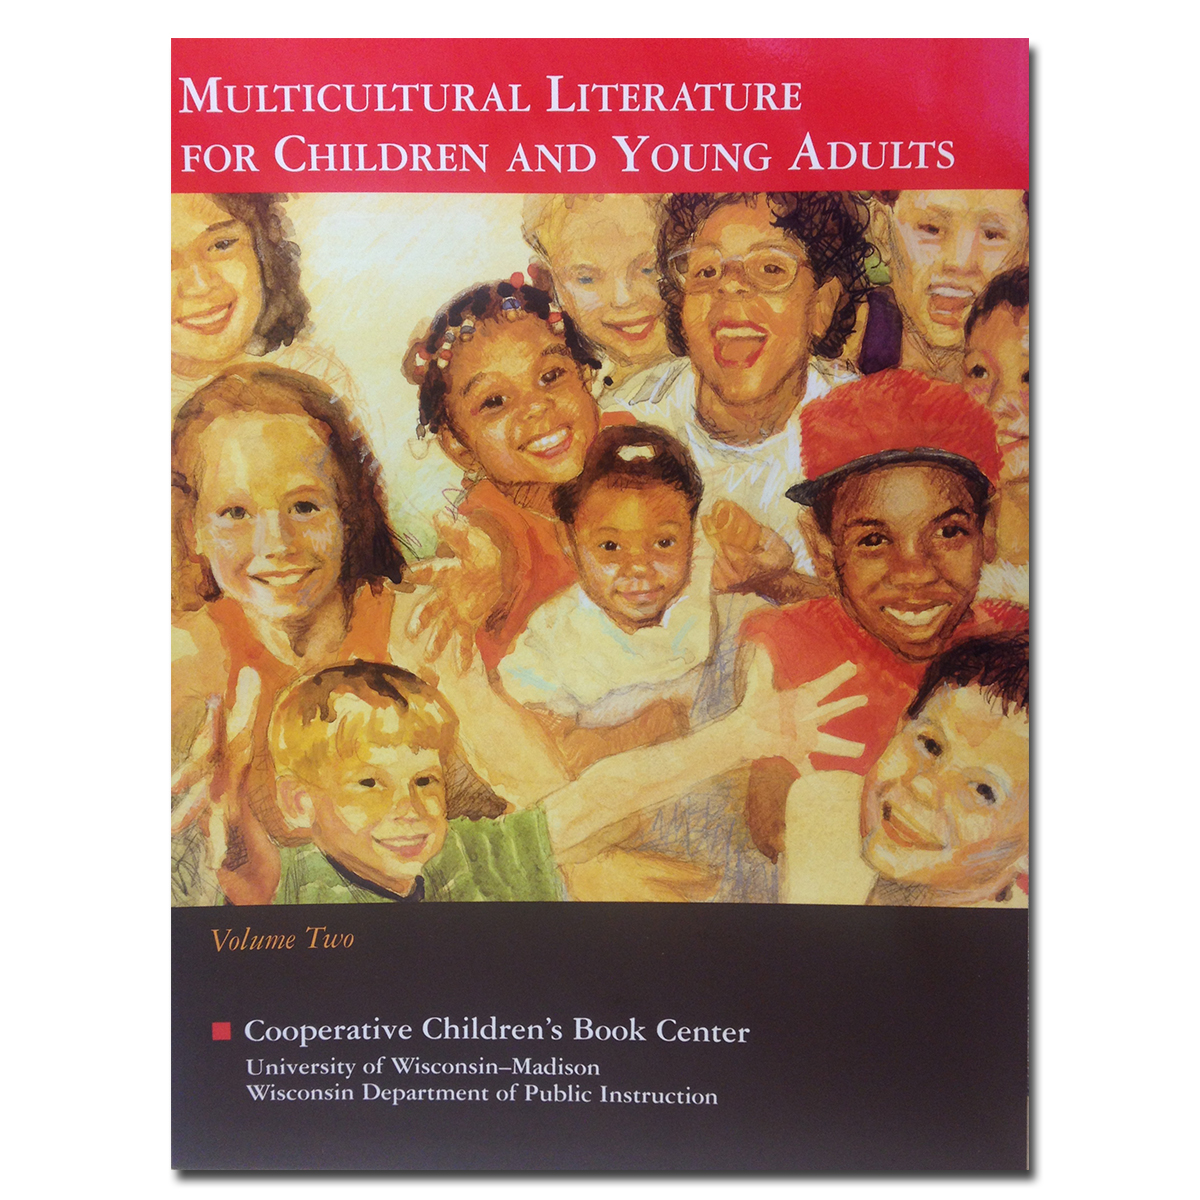 Multicultural Literature for Children and Young Adults: Vol. 2 Cover